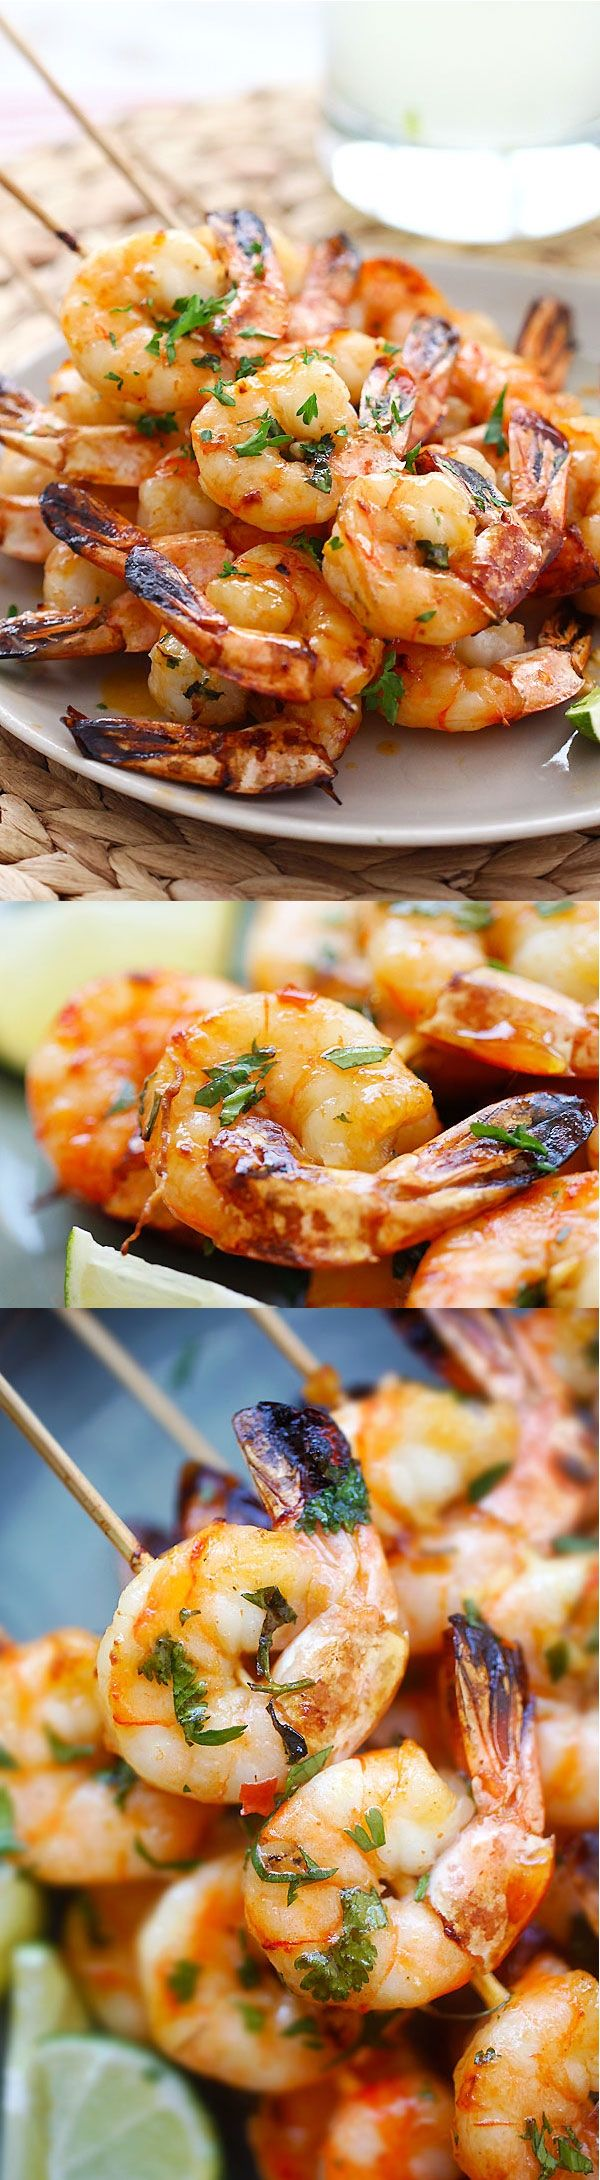 Honey Sriracha Shrimp Kebab \u2013 crazy delicious shrimp kebab with honey Sriracha butter. Thread shrimp on skewers and grill, so easy!! | rasamalaysia.com #totalbodytransformation